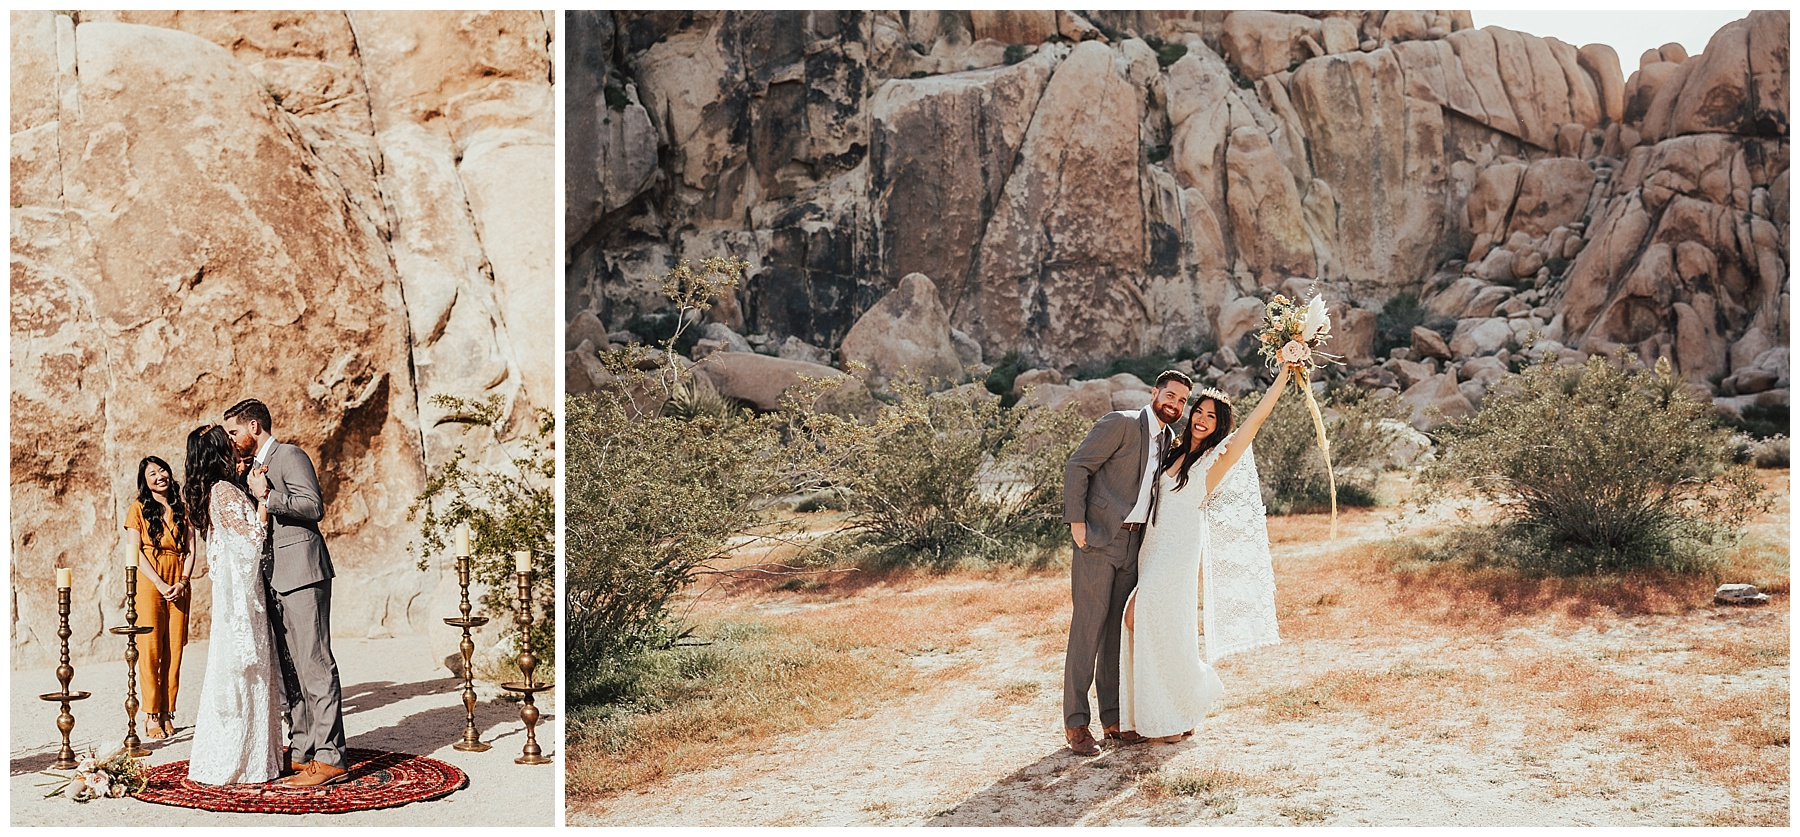 Joshua Tree Wedding at Indian Cove Amphitheater